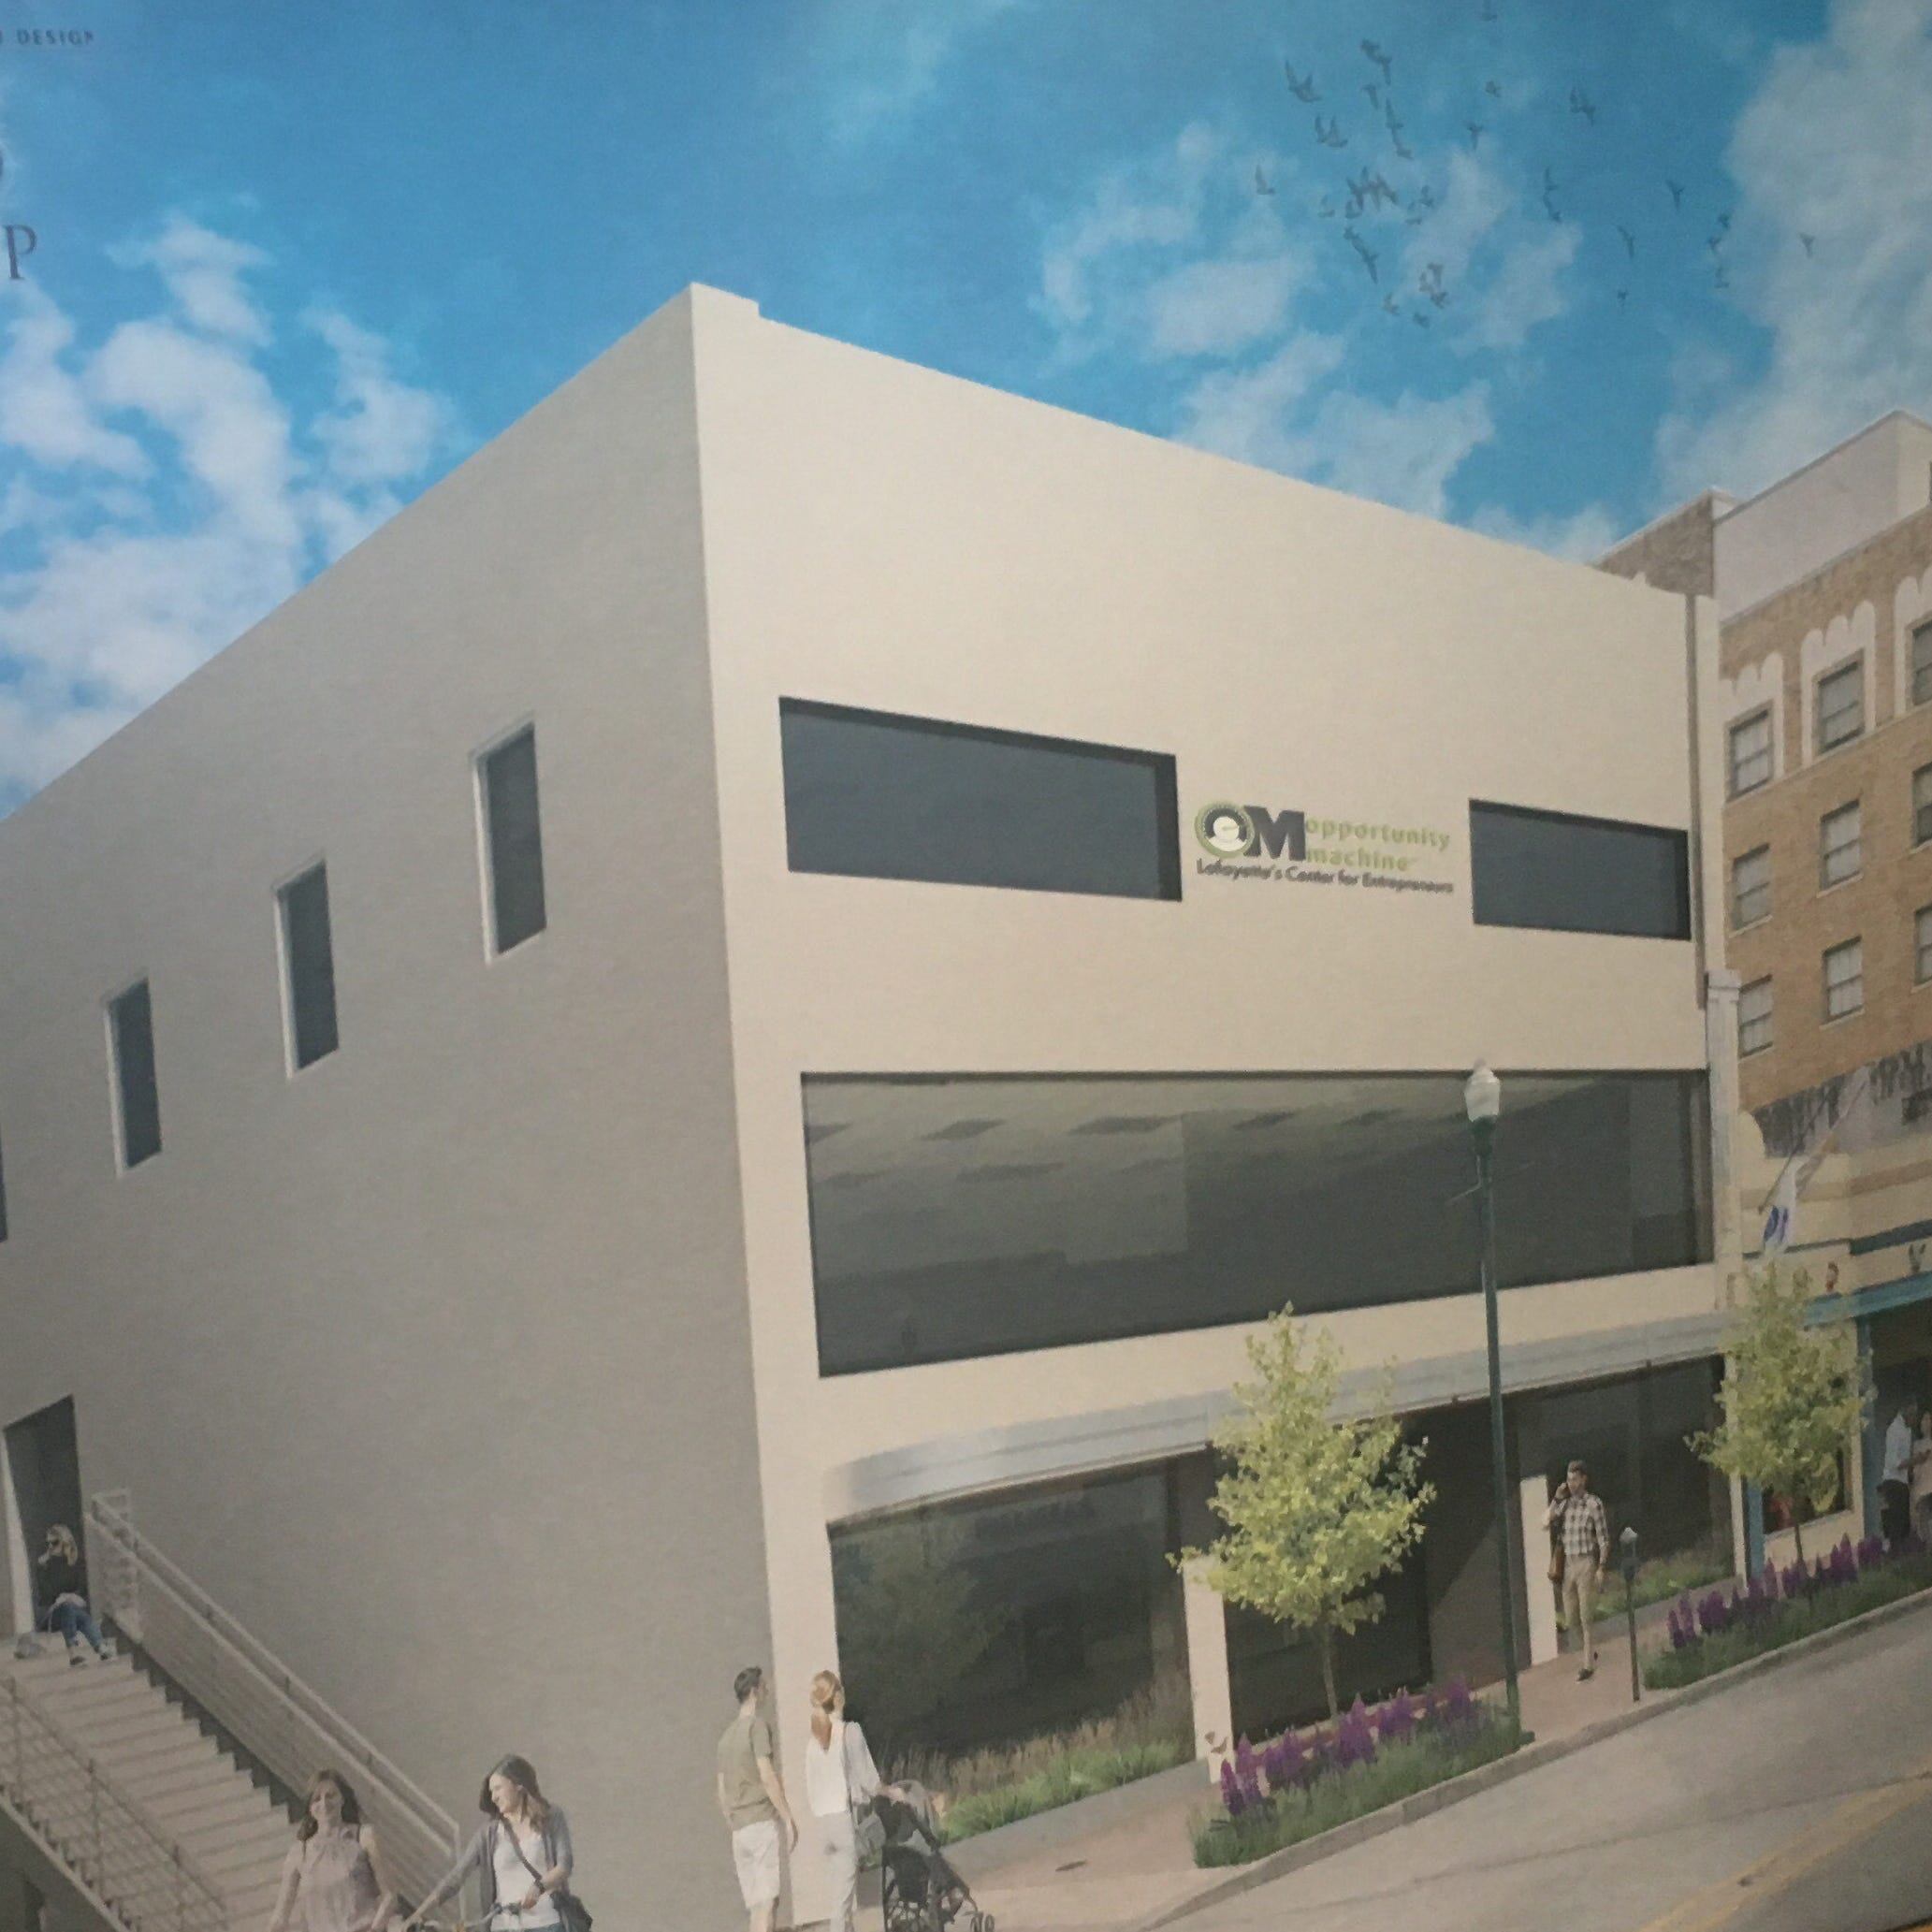 LEDA acquires former Karma nightclub property; Opportunity Machine to move in